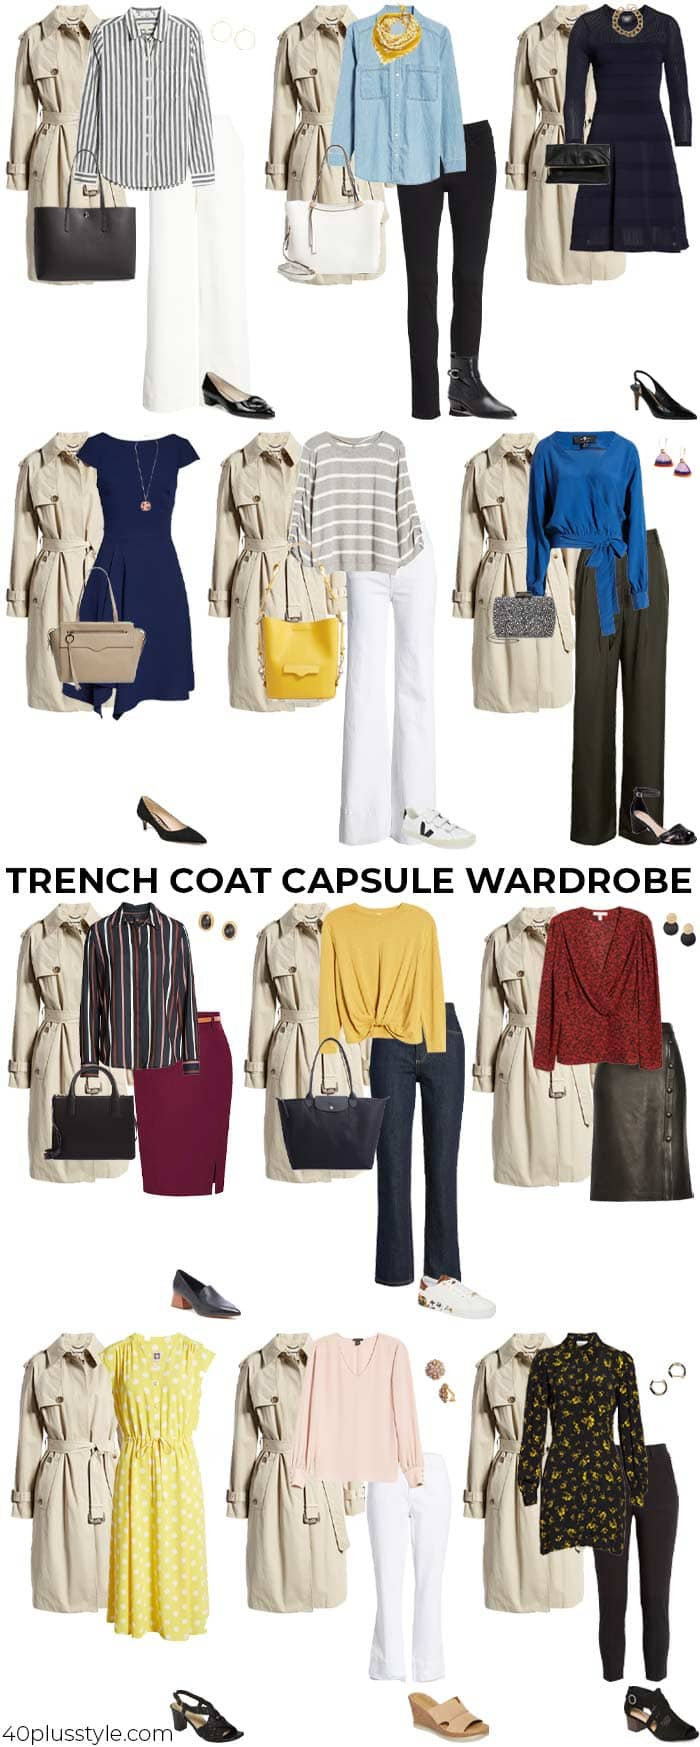 A trench coat capsule wardrobe | 40plusstyle.com